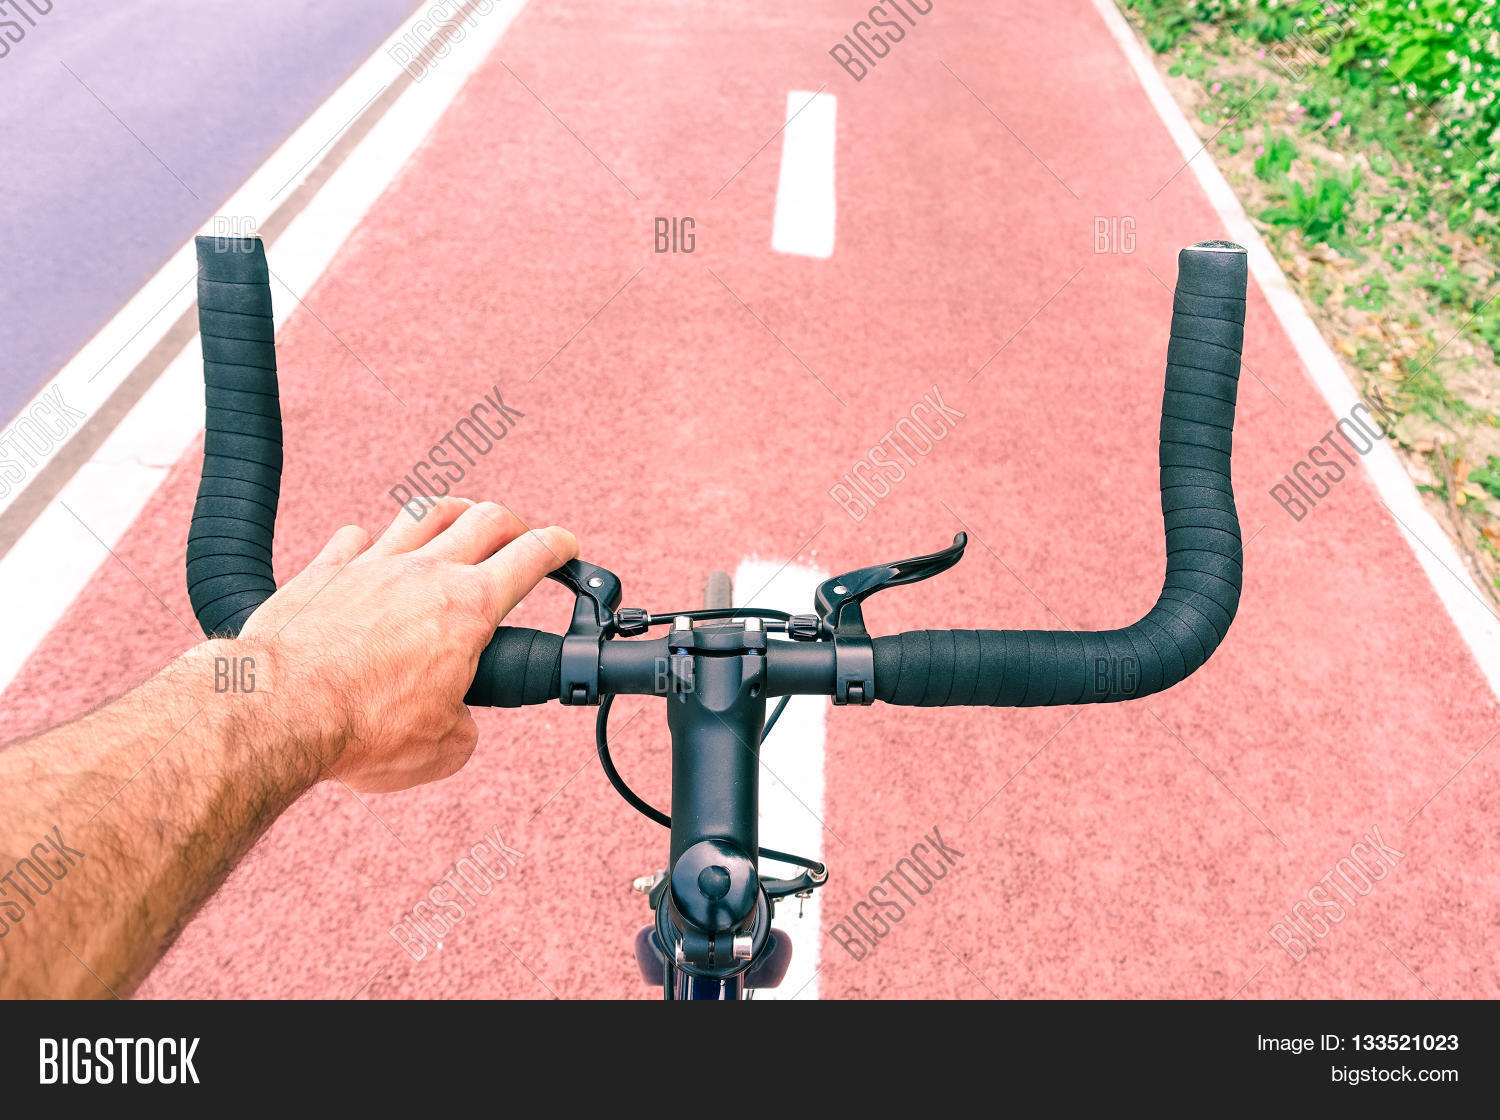 Man Riding Sport Bike Image & Photo (Free Trial) | Bigstock